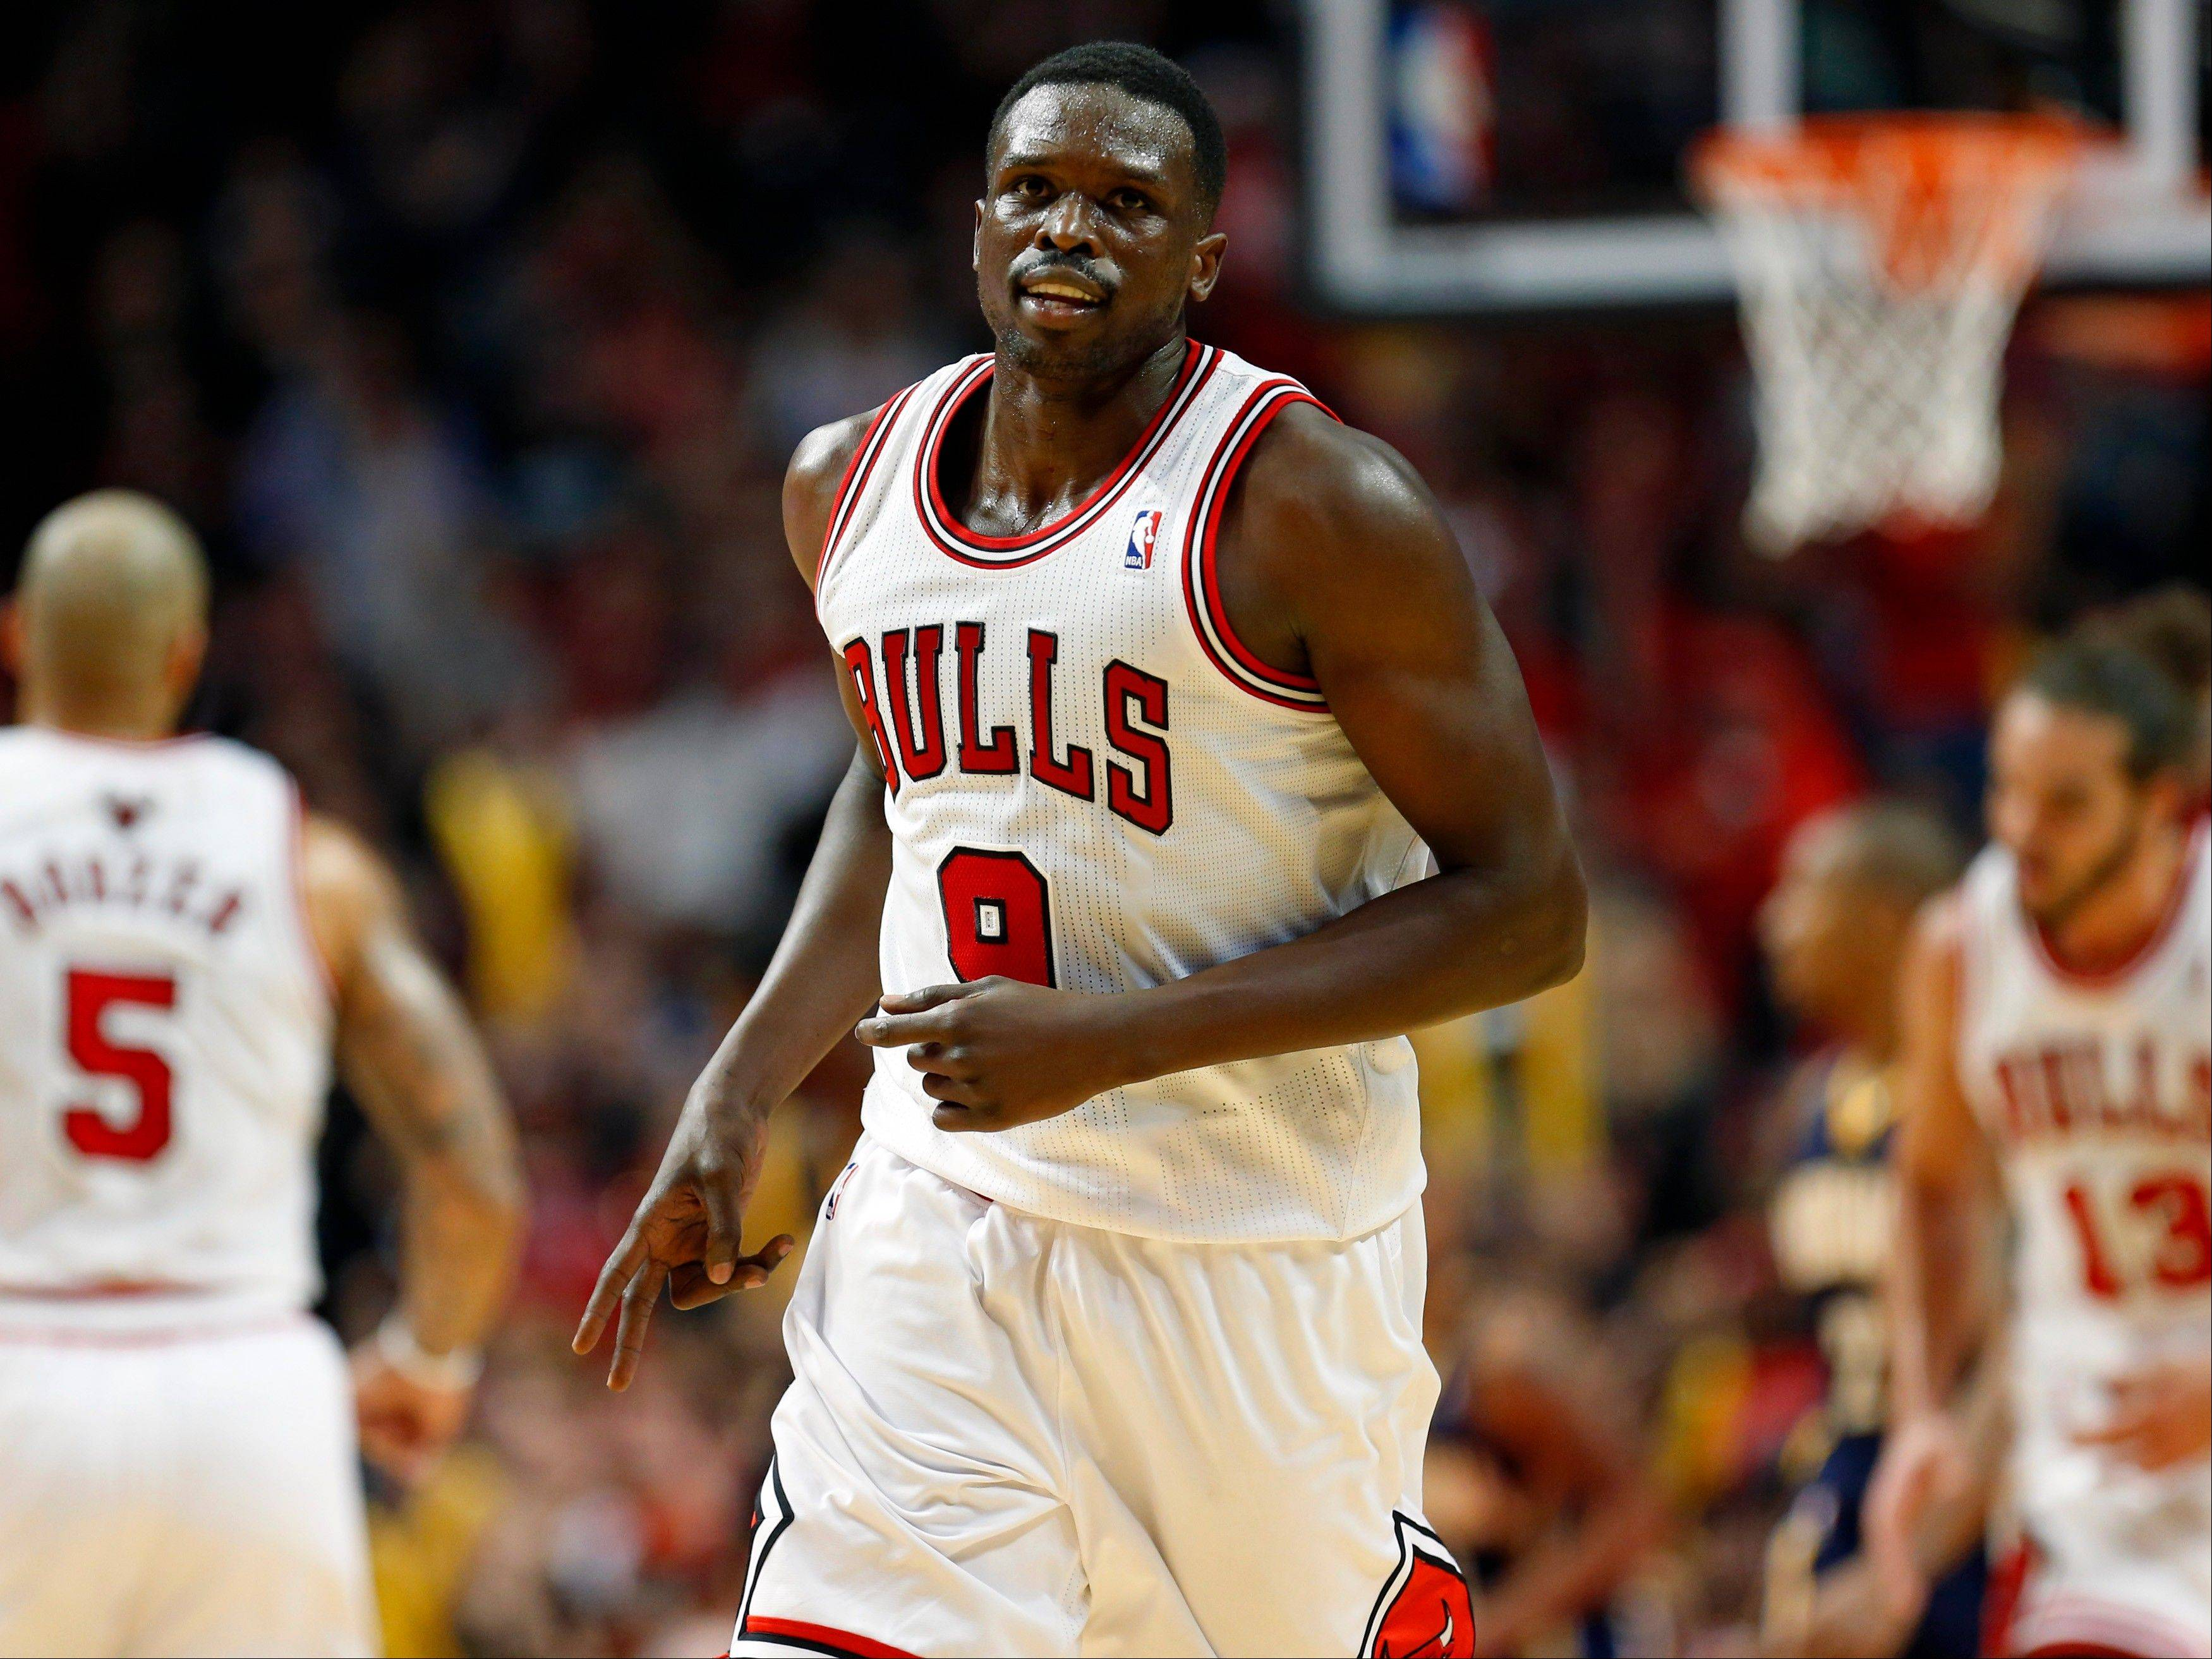 Trading forward Luol Deng and getting a good player in return could be difficult with Deng�s expiring contract. Contending teams may not have the right fit in return, and other teams may be worried about not being able to re-sign him.